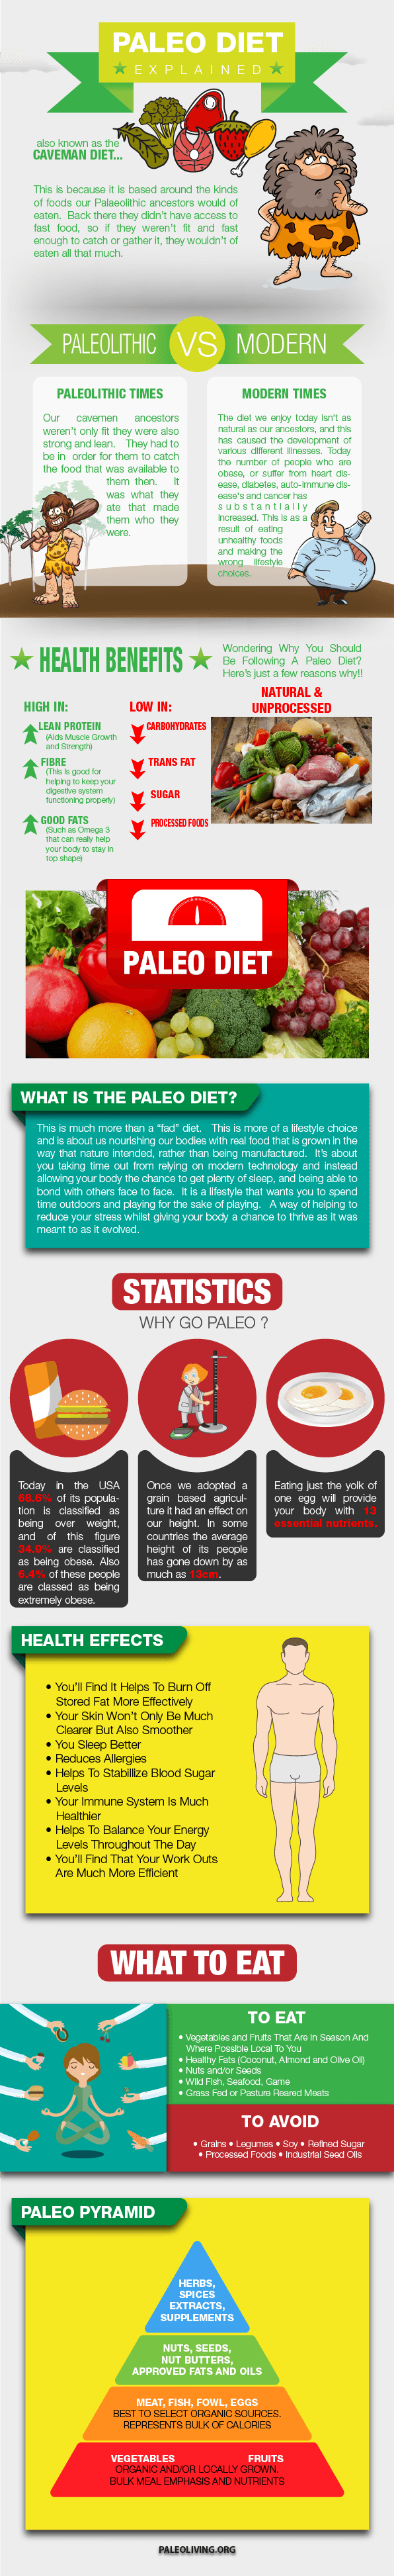 The Ultimate Paleo Guide